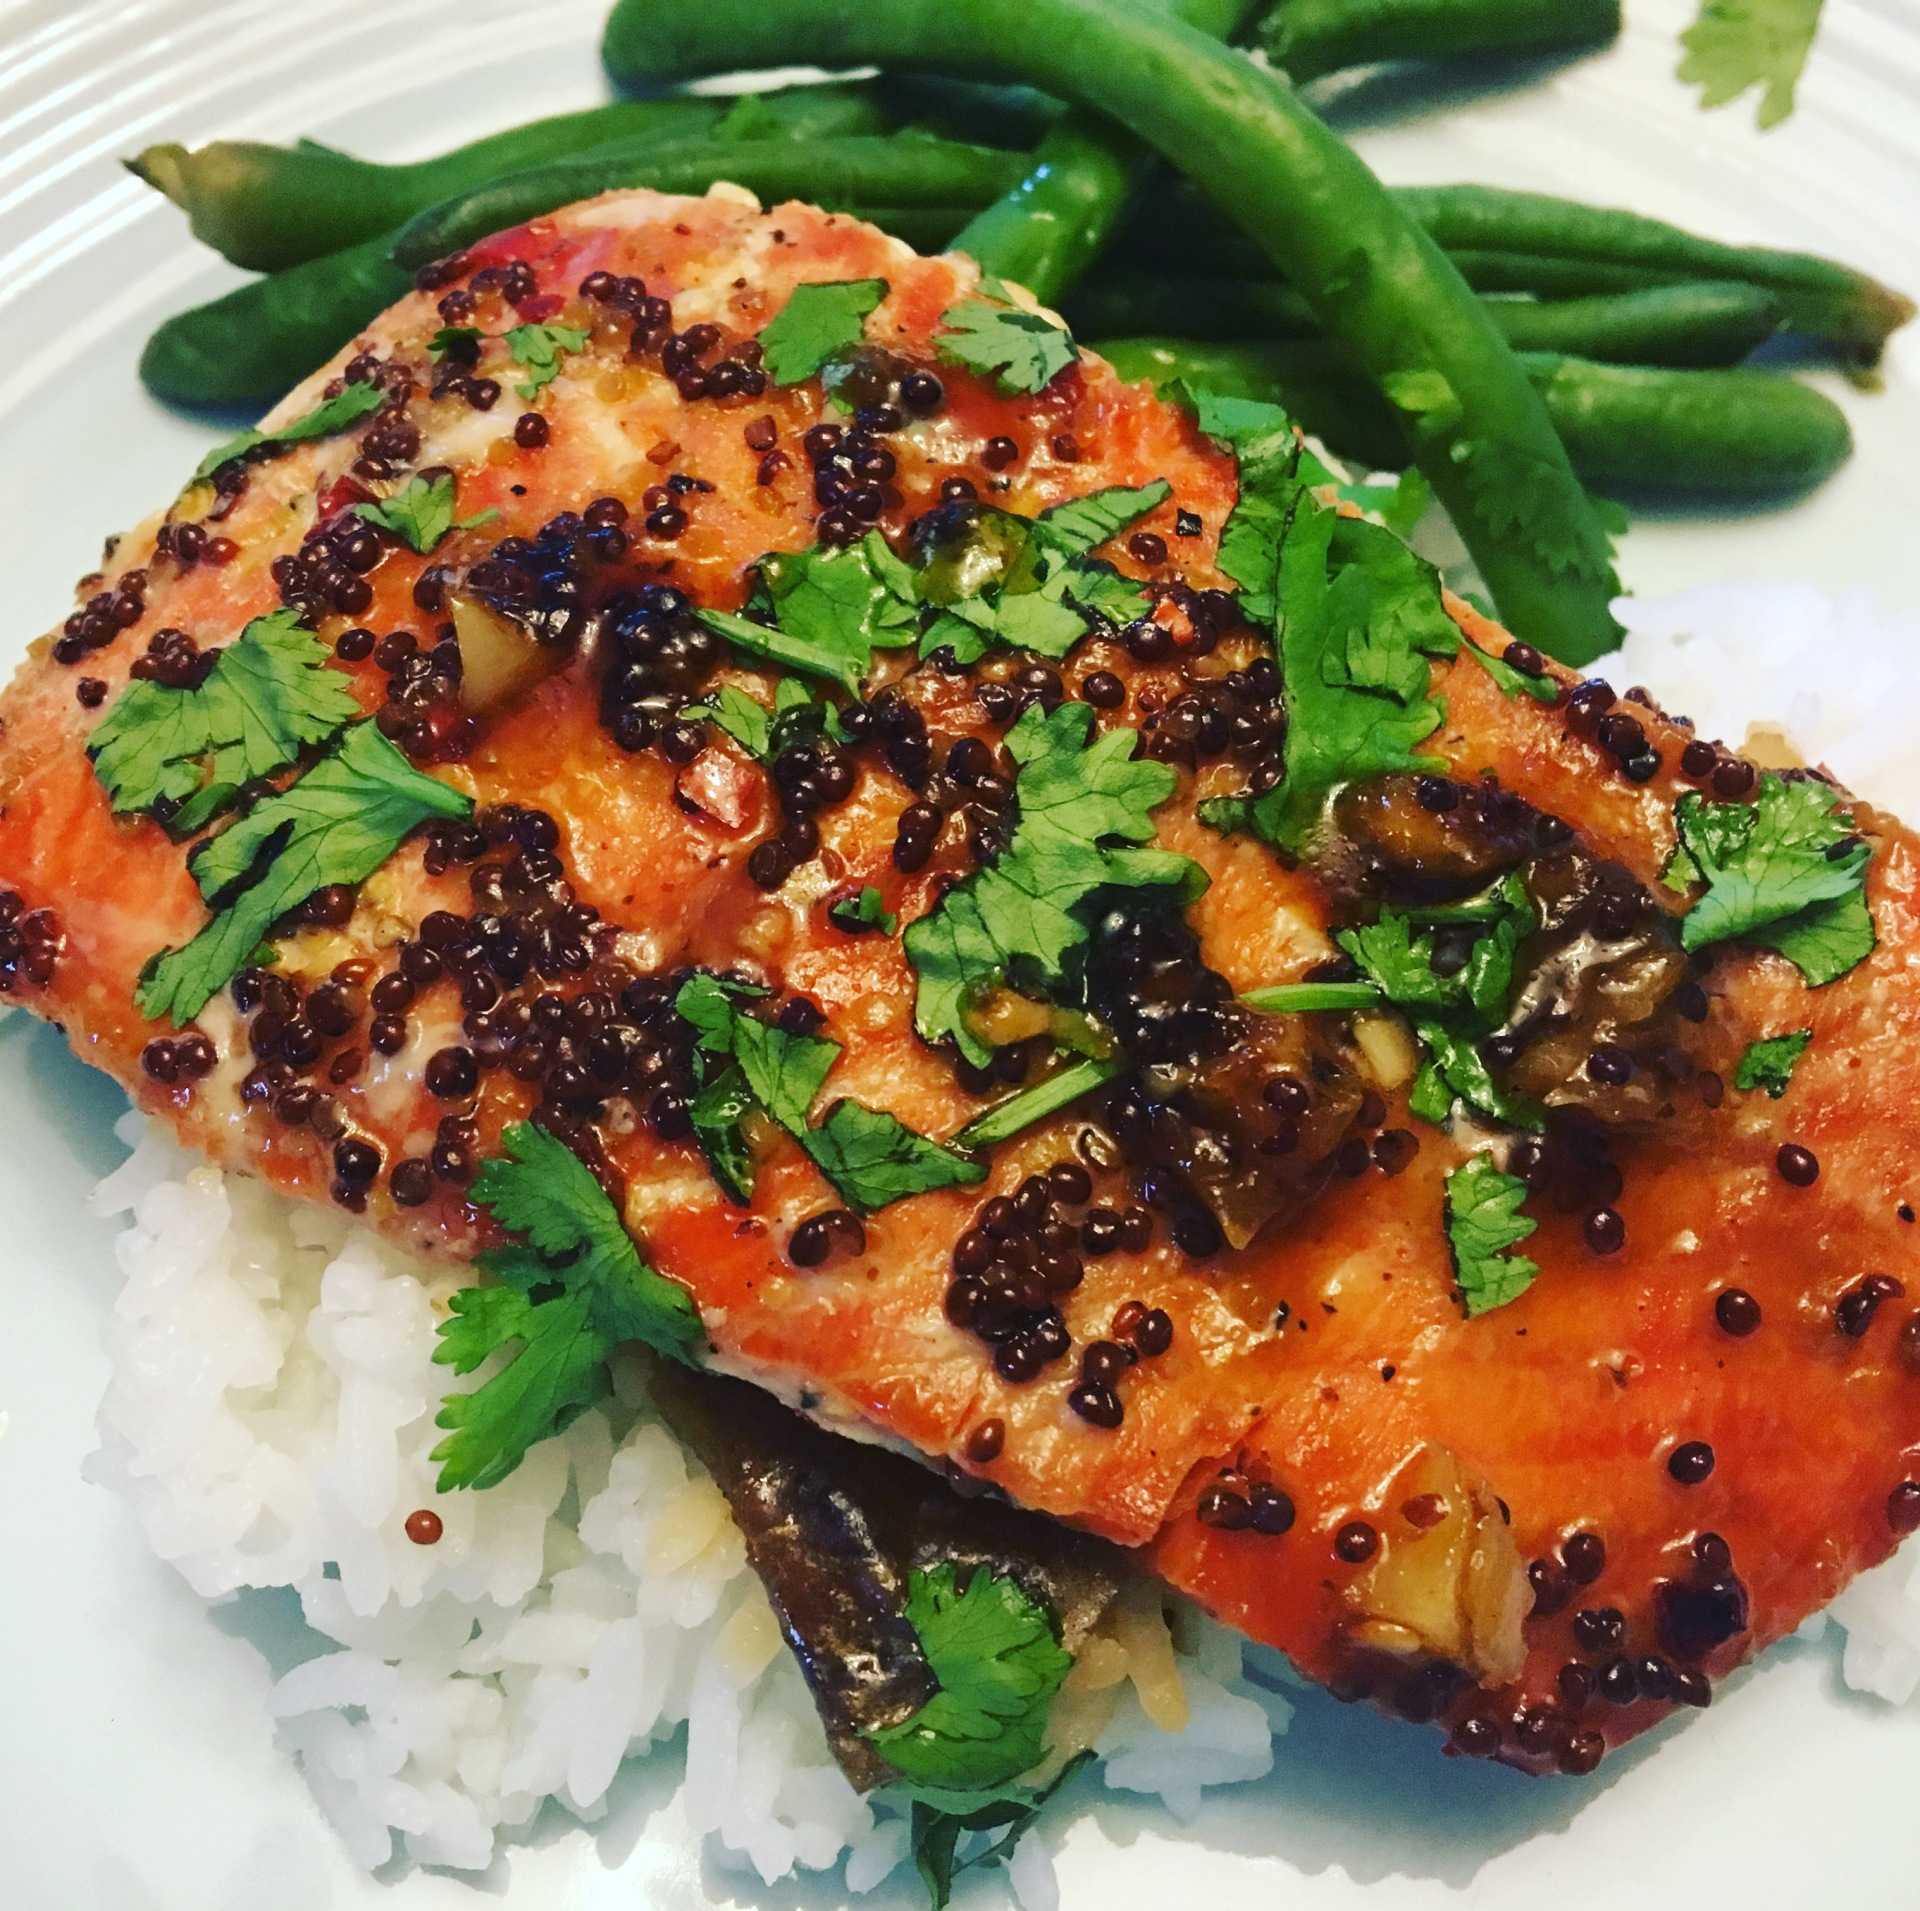 Spicy Honey Mustard Glazed Salmon